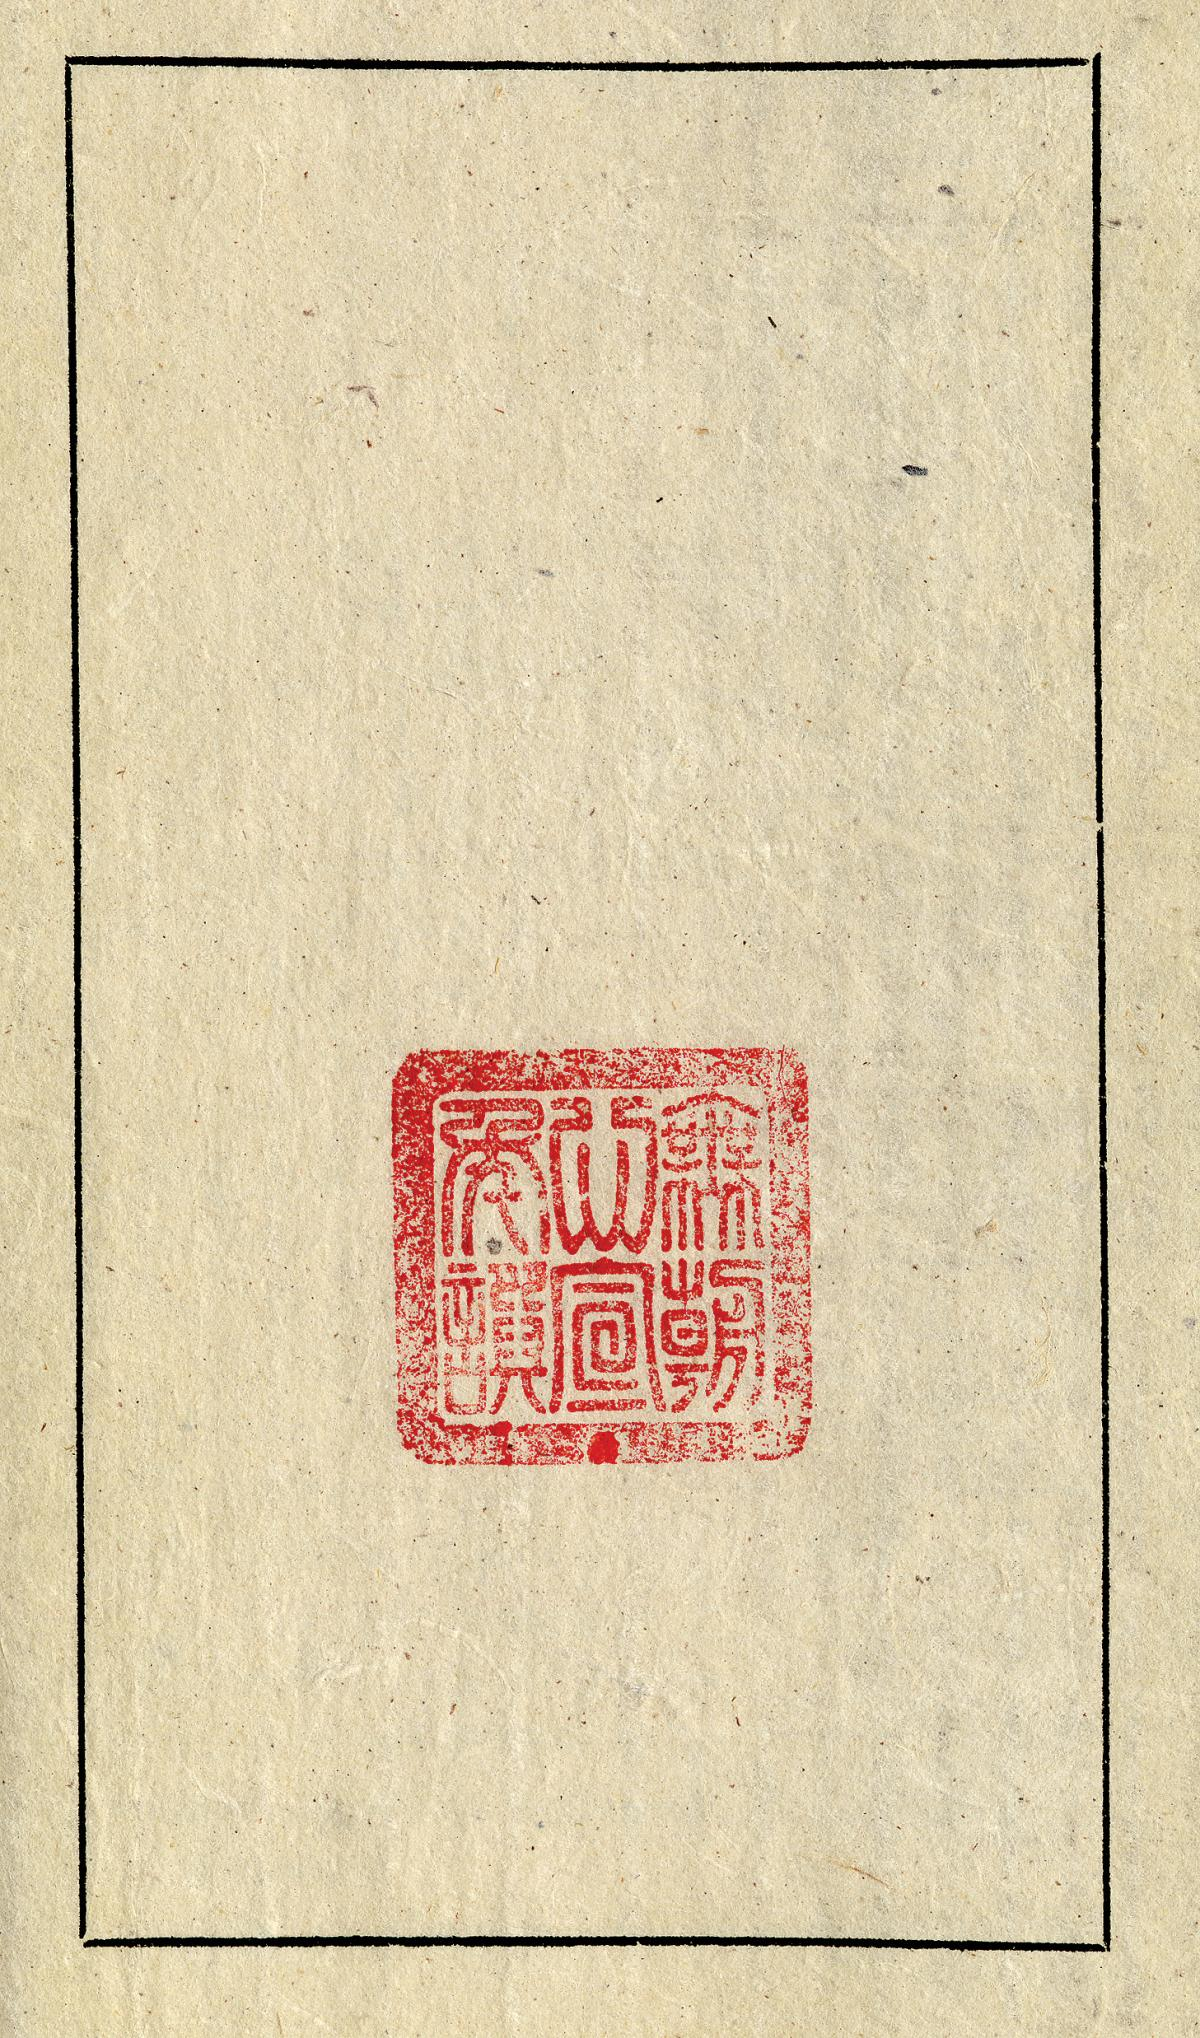 Seal printed in red ink on yellowing paper